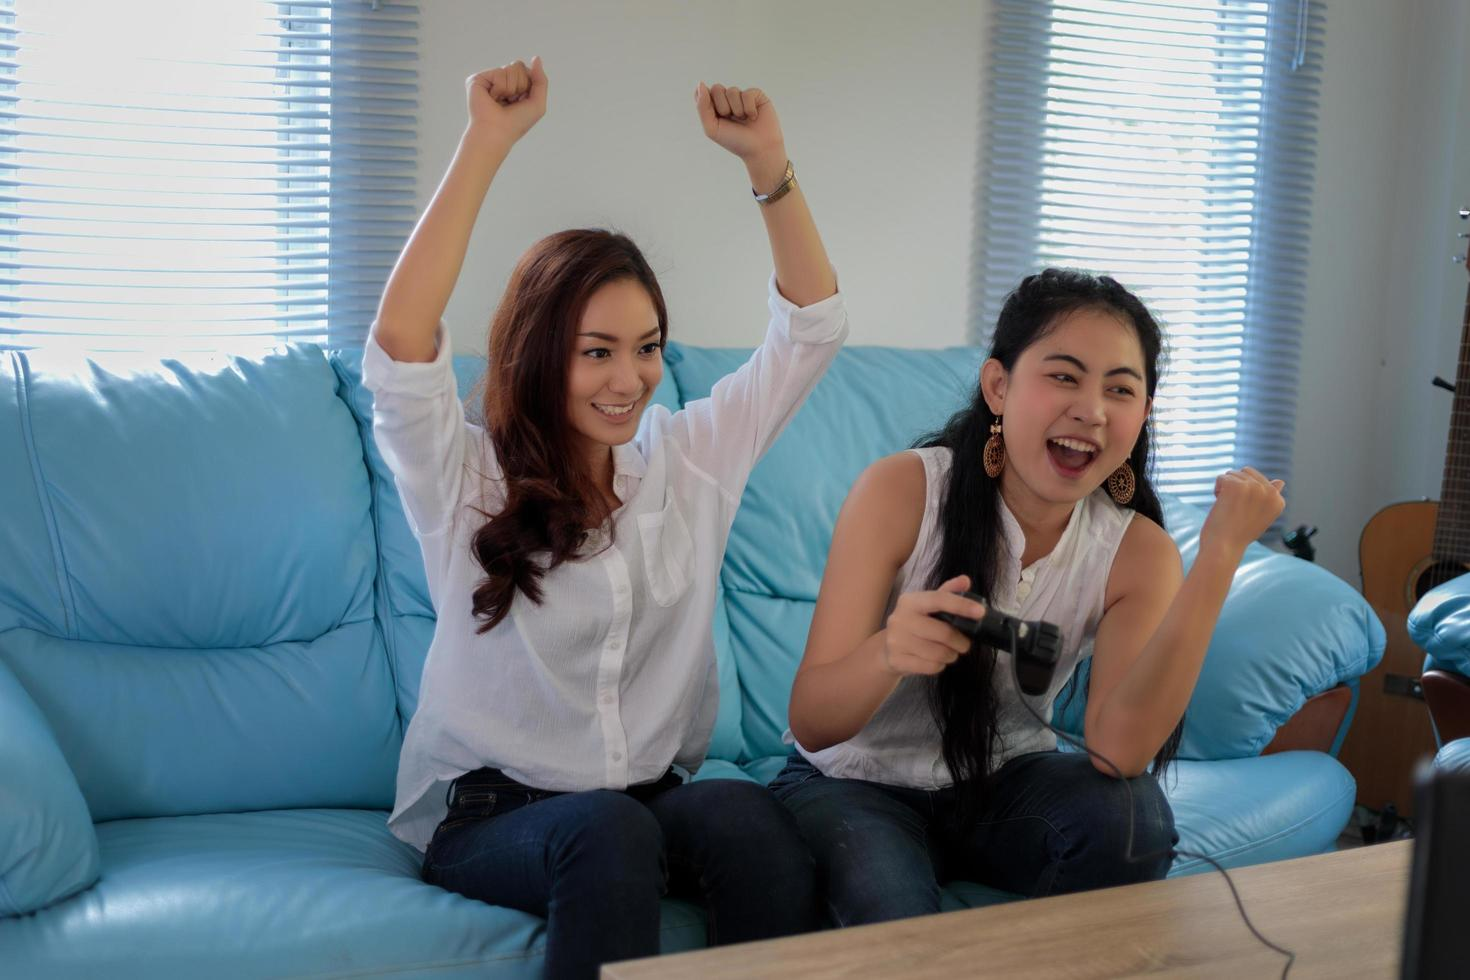 Asian  women playing video games  at home photo